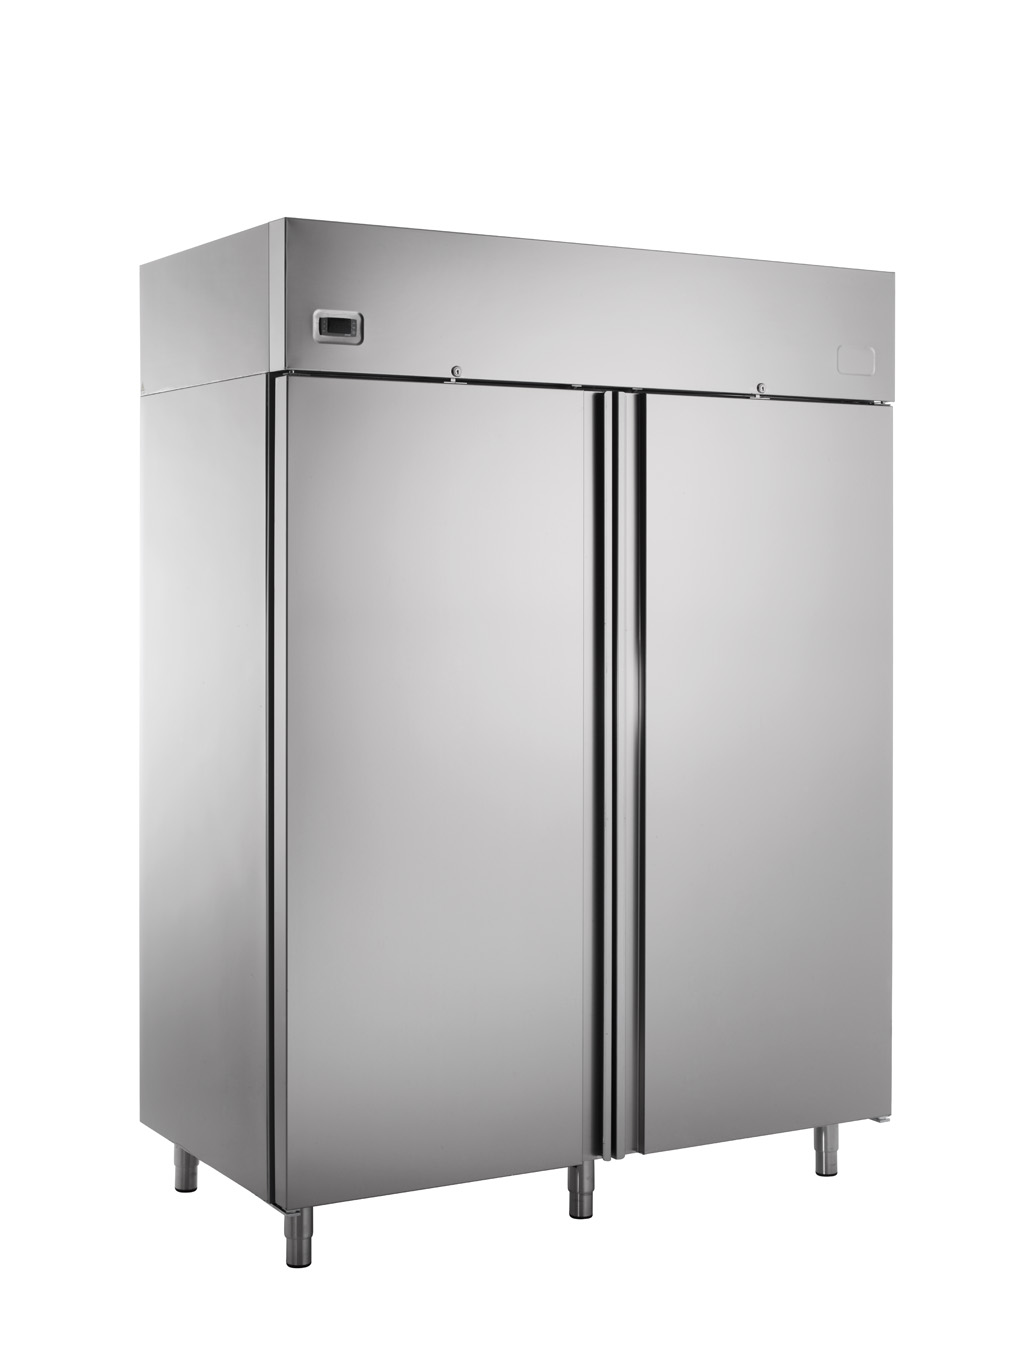 Stainless Steel Two Doors Refrigerator, Commercial Refrigerator